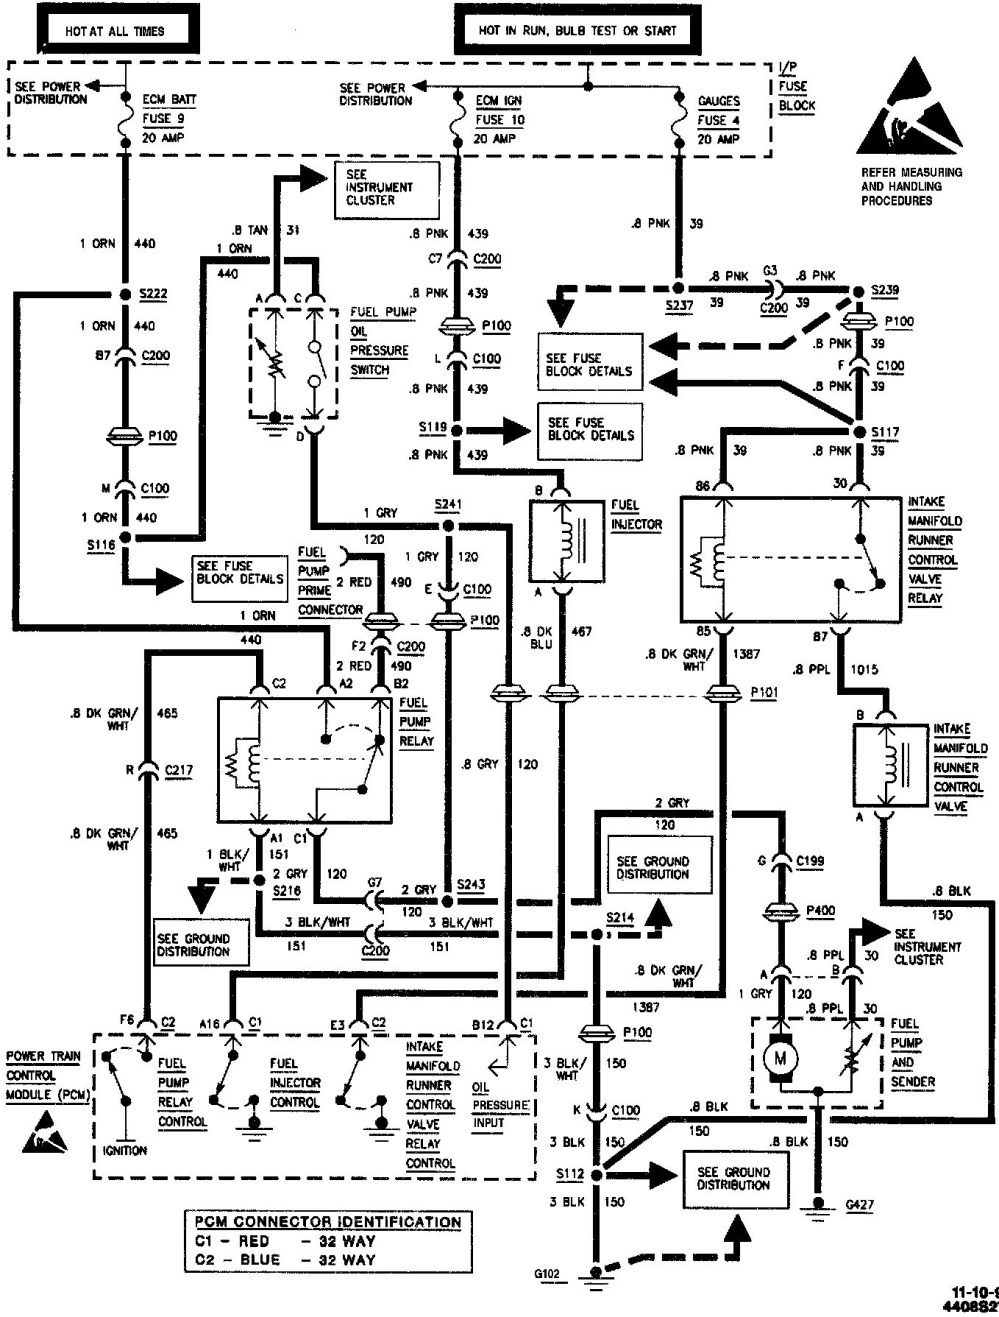 medium resolution of 96 chevy s10 wiring diagram wiring diagrams konsult96 s10 truck wiring diagram wiring diagram set 96